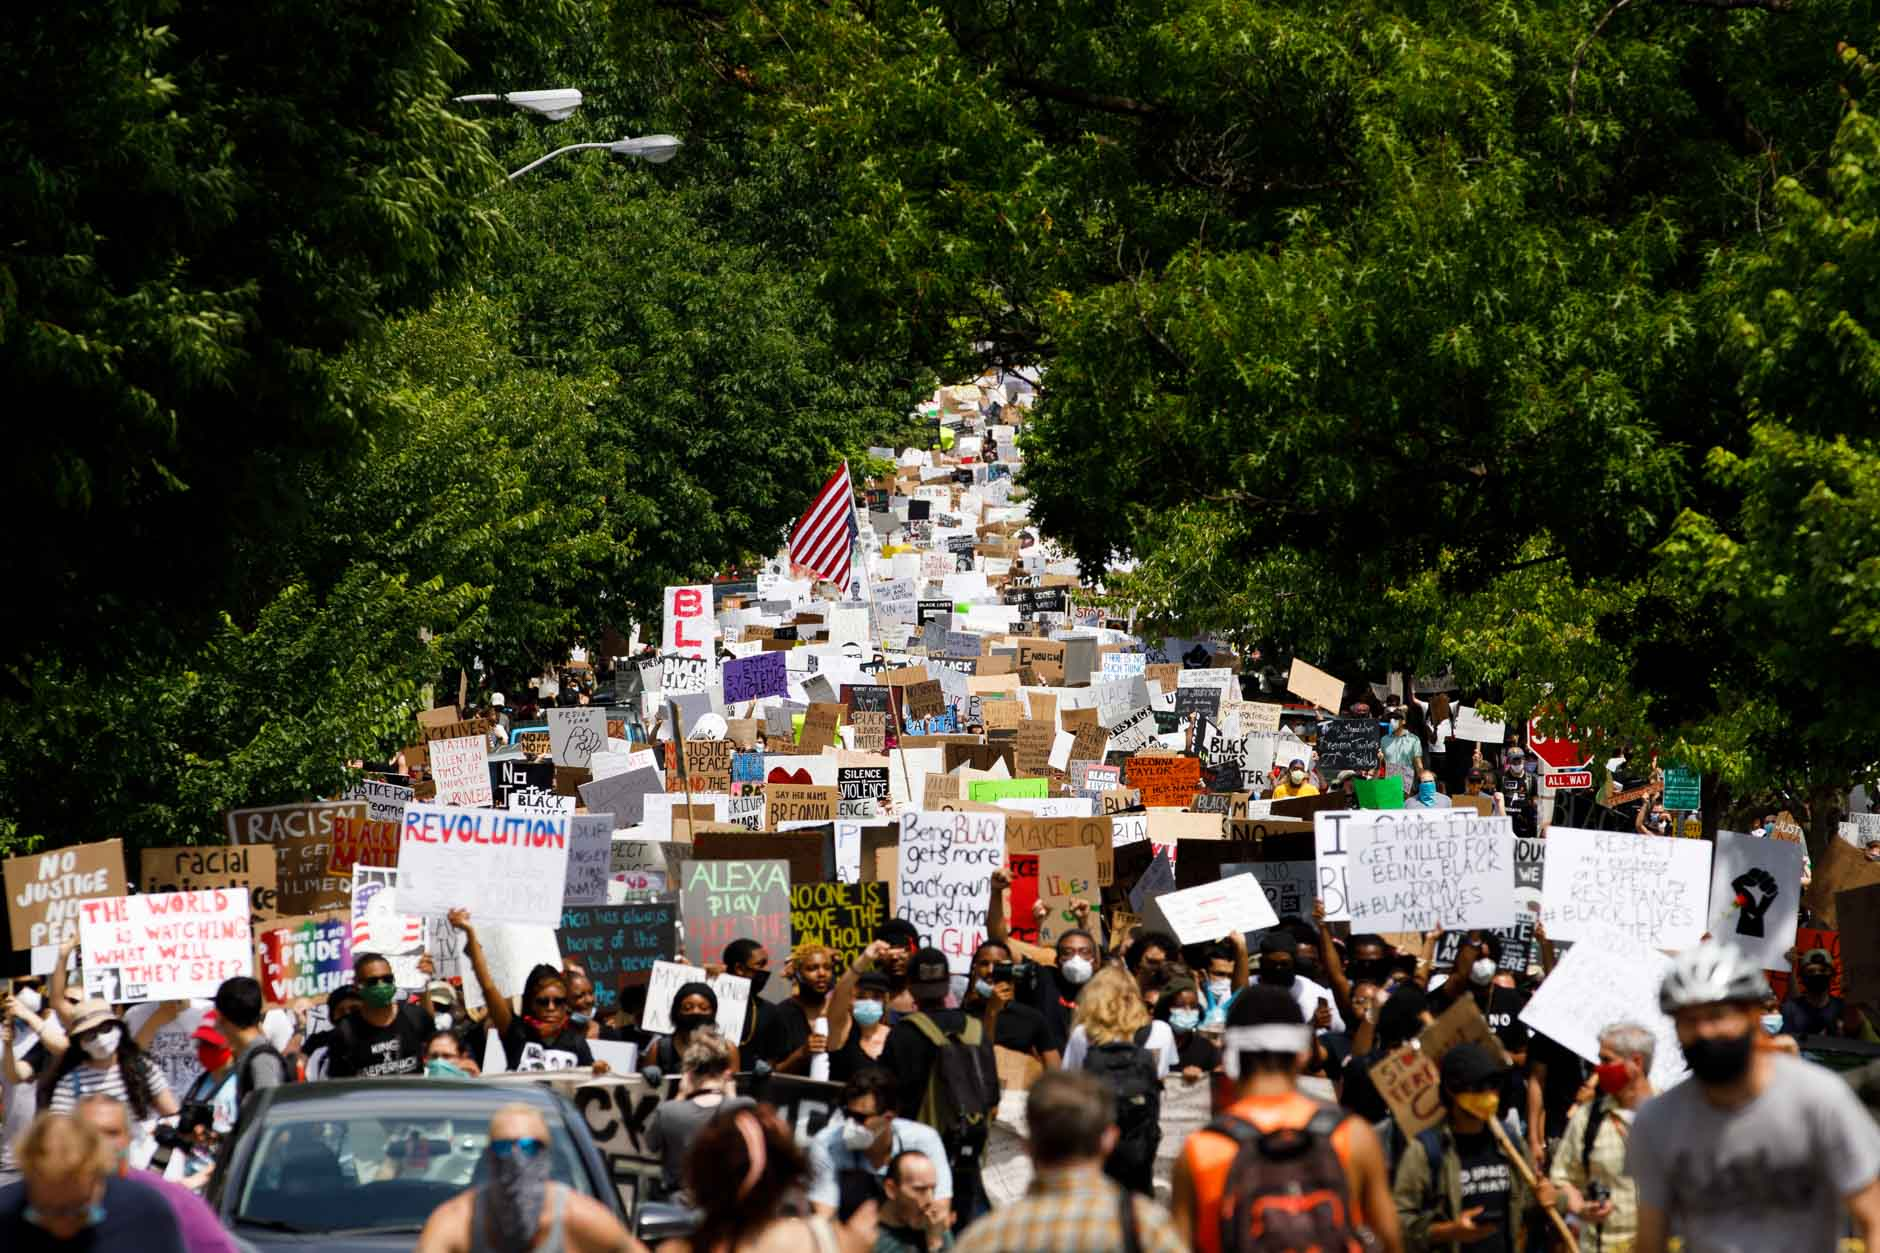 Hundreds march peacefully against police brutality along Seventh Street from Dunn Meadow at Indiana University Bloomington to the Monroe County Courthouse square on Friday, June 5, 2020. (James Brosher/Indiana University)